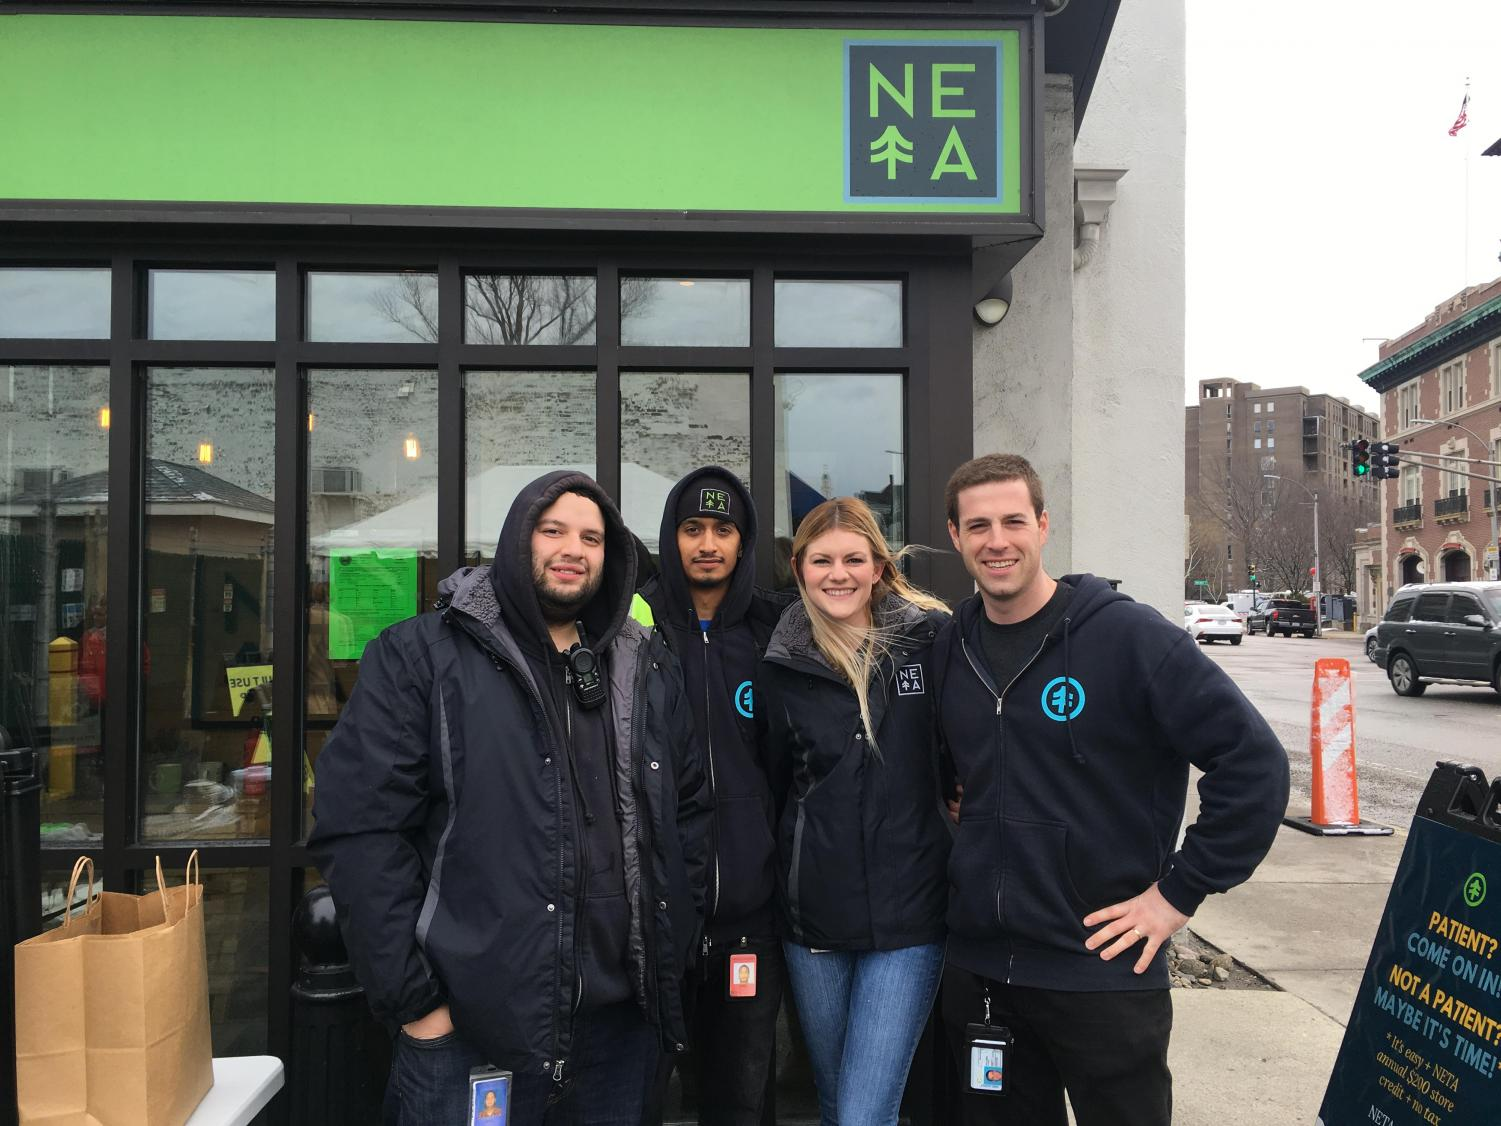 NETA employees stand outside the company's Brookline location, which opened its doors to recreational users Saturday.